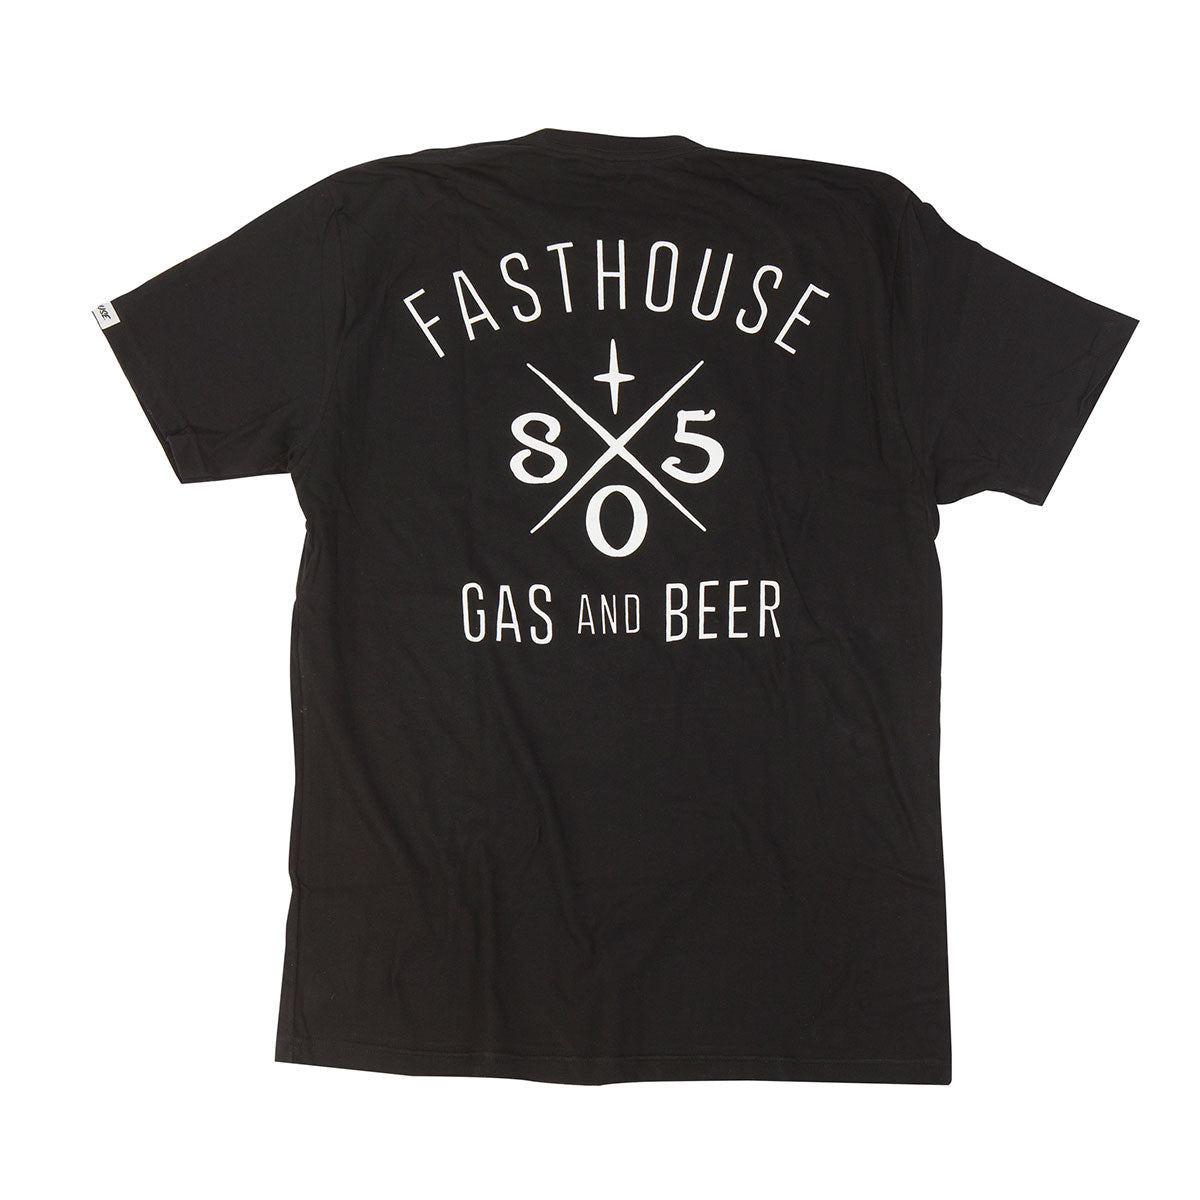 Fasthouse - 805 Gas & Beer Tee - Black